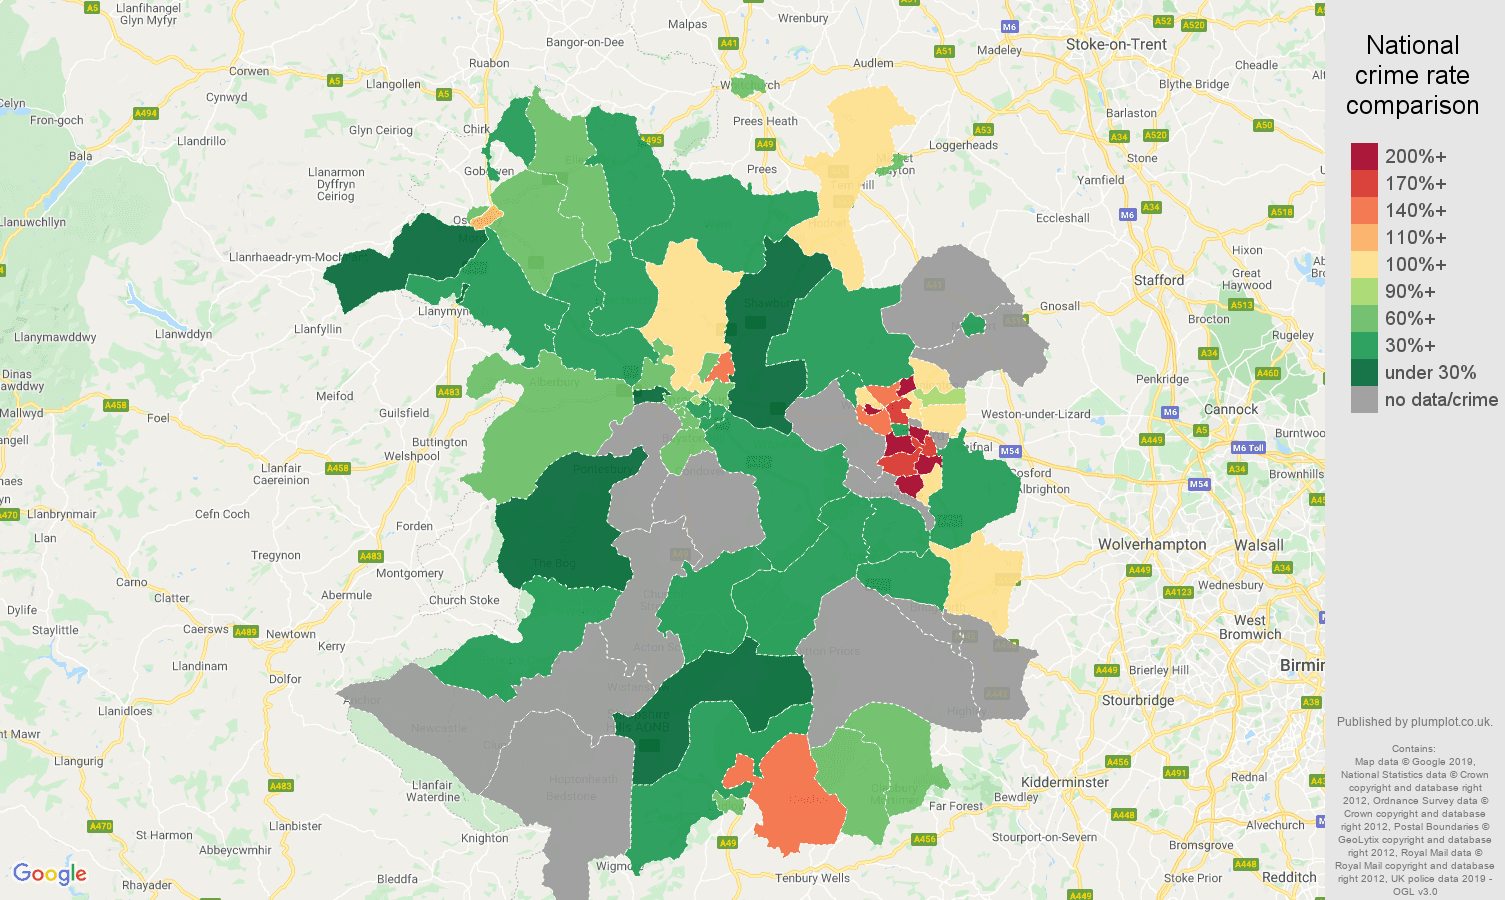 Shropshire possession of weapons crime rate comparison map